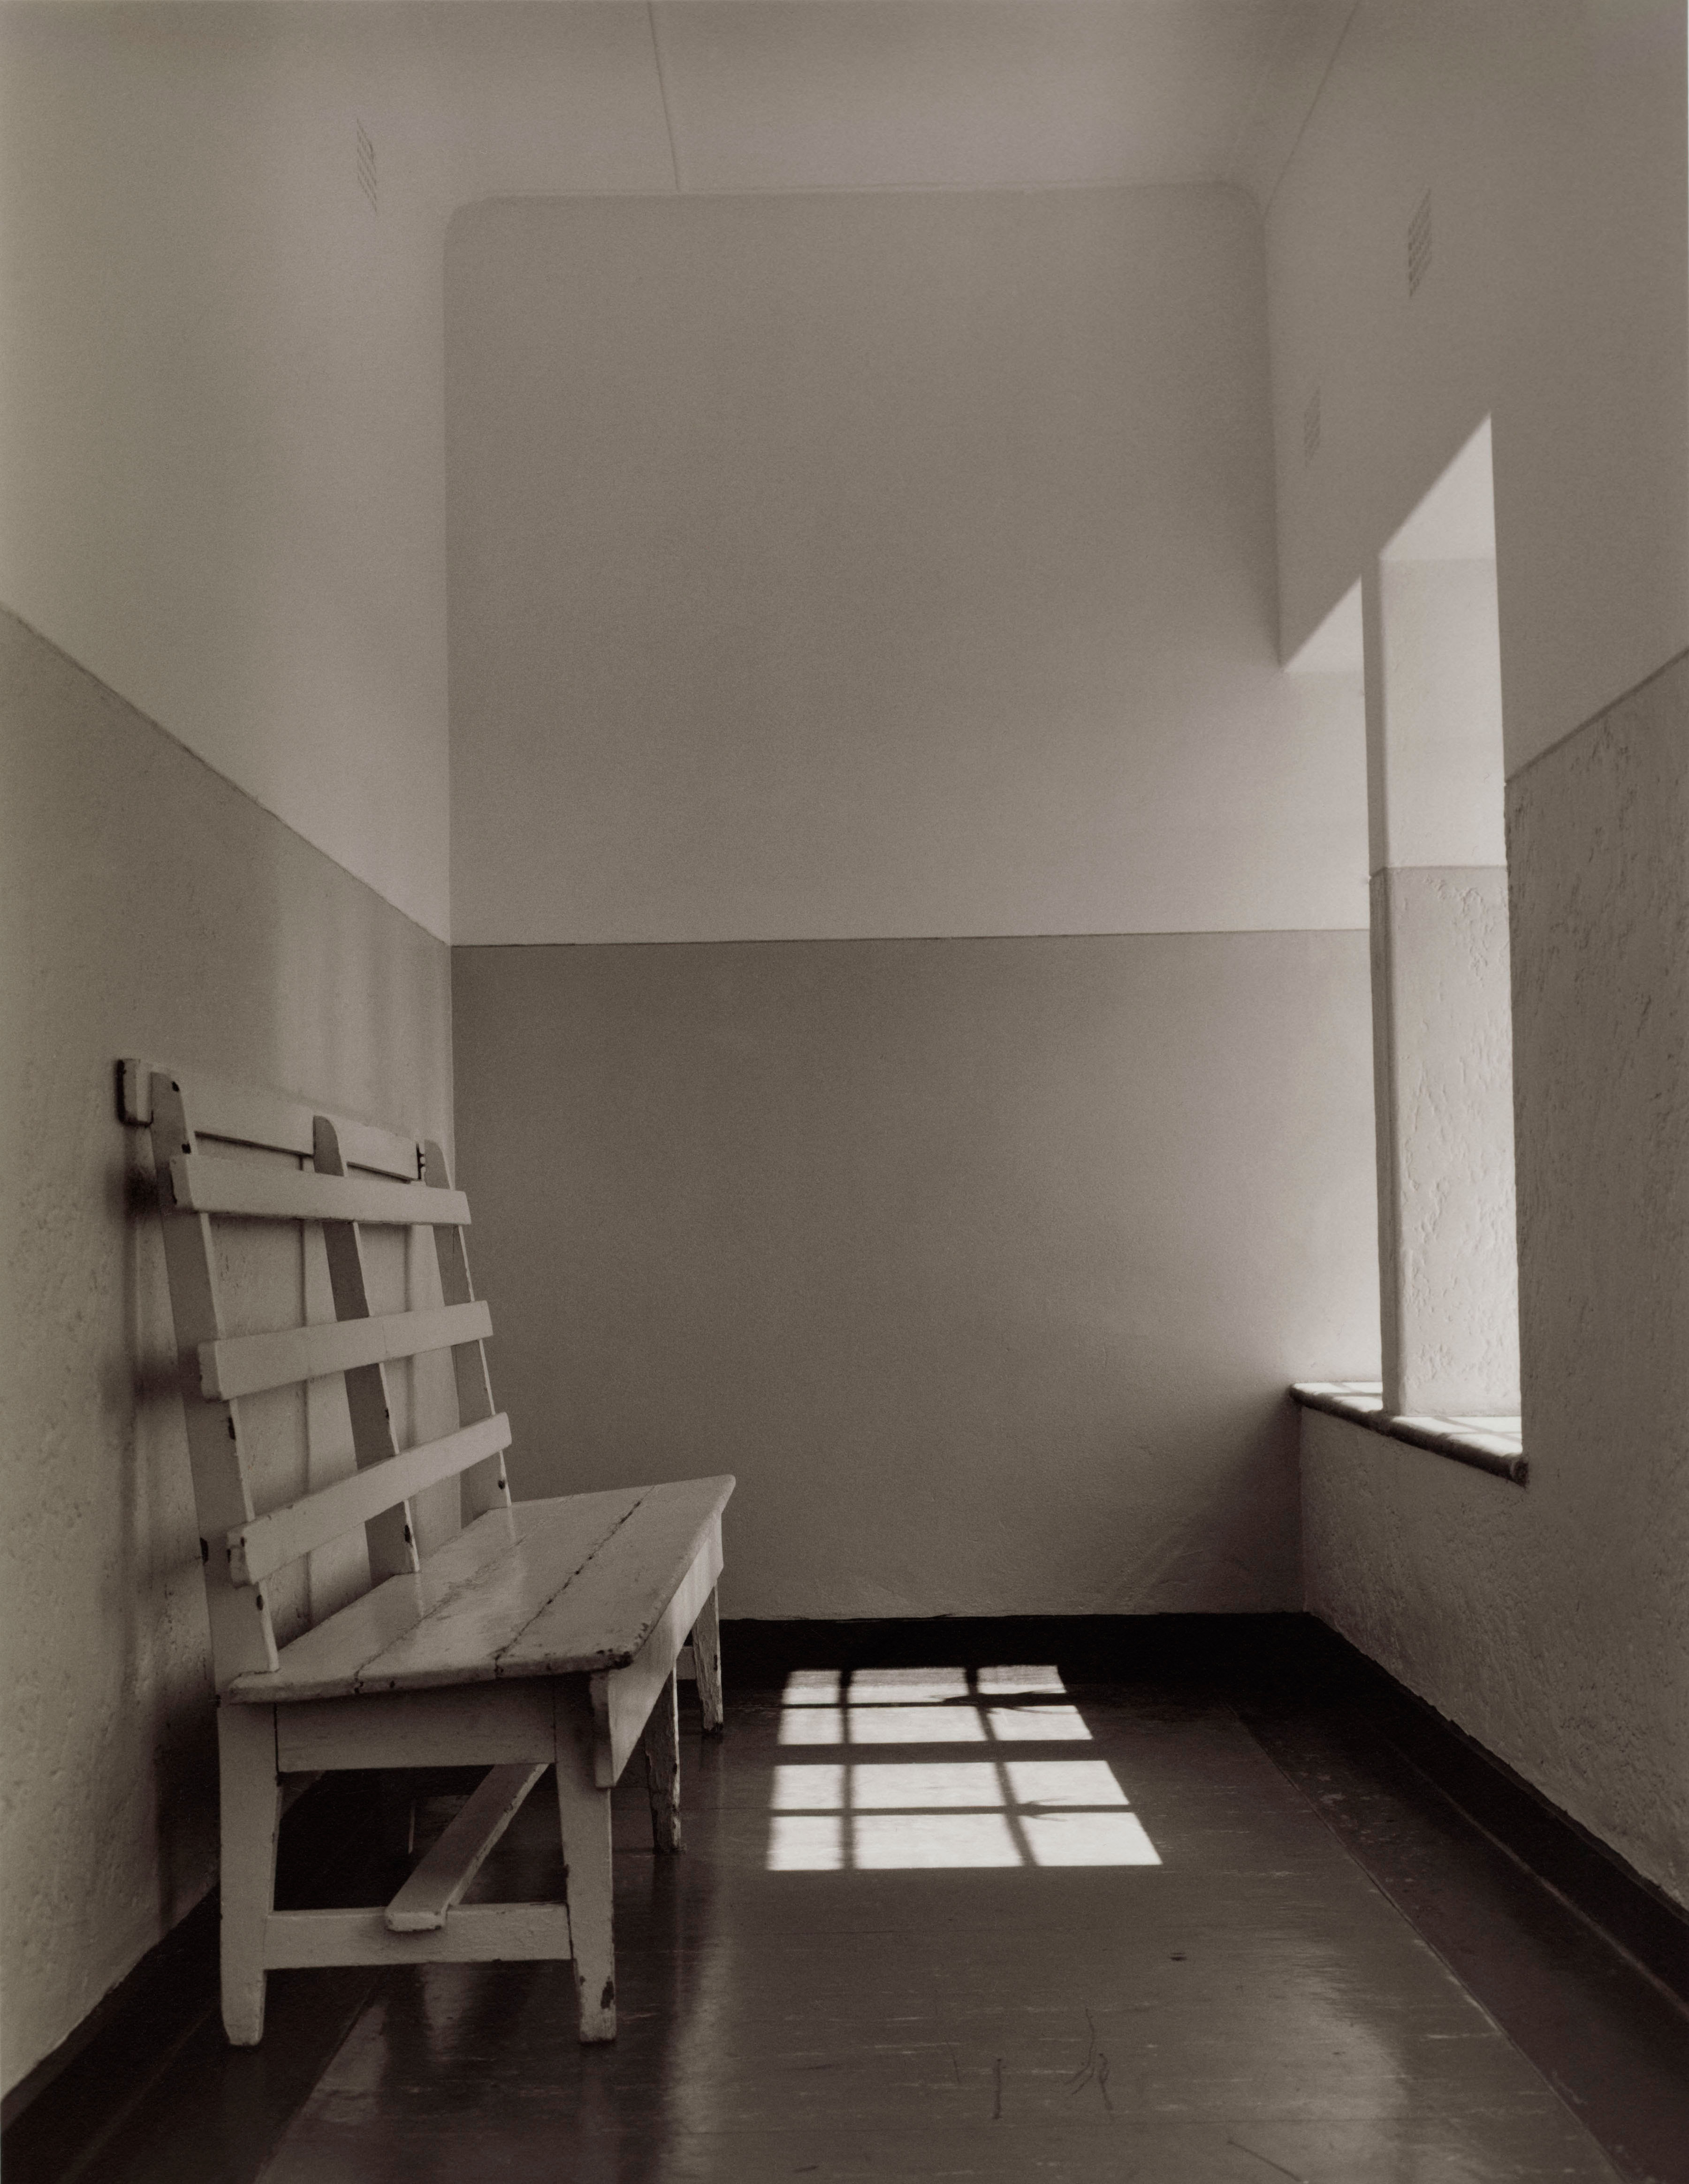 The waiting area for friends and relatives visiting their imprisoned loved ones.                                                                                             1992